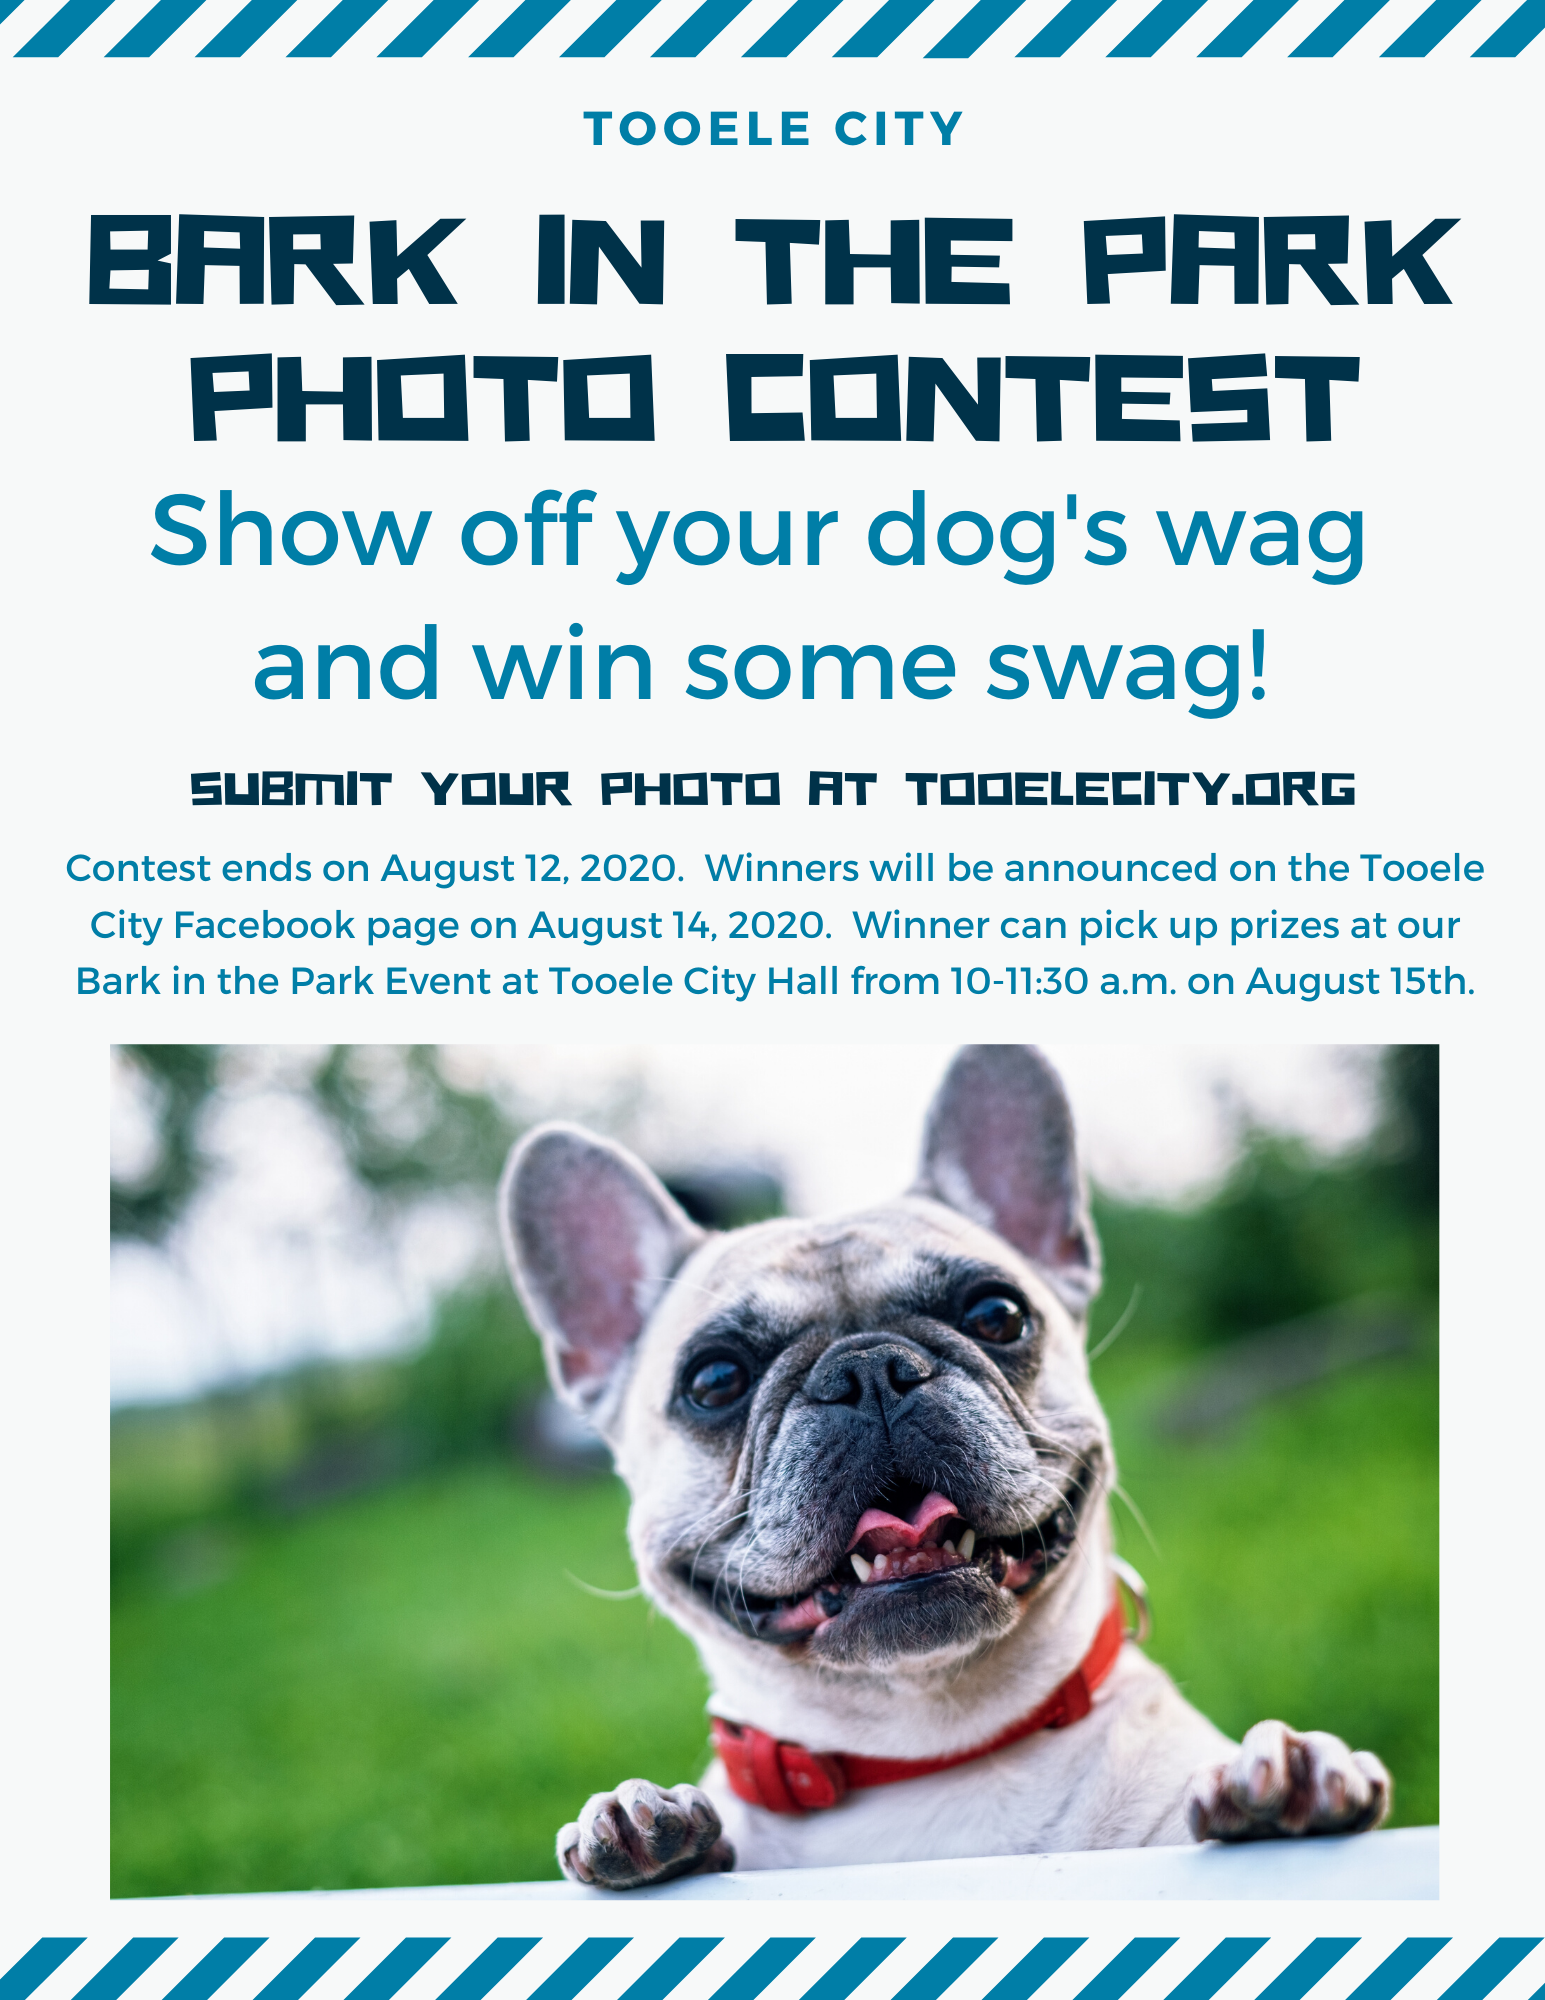 Bark in the Park Photo Contest Flyer